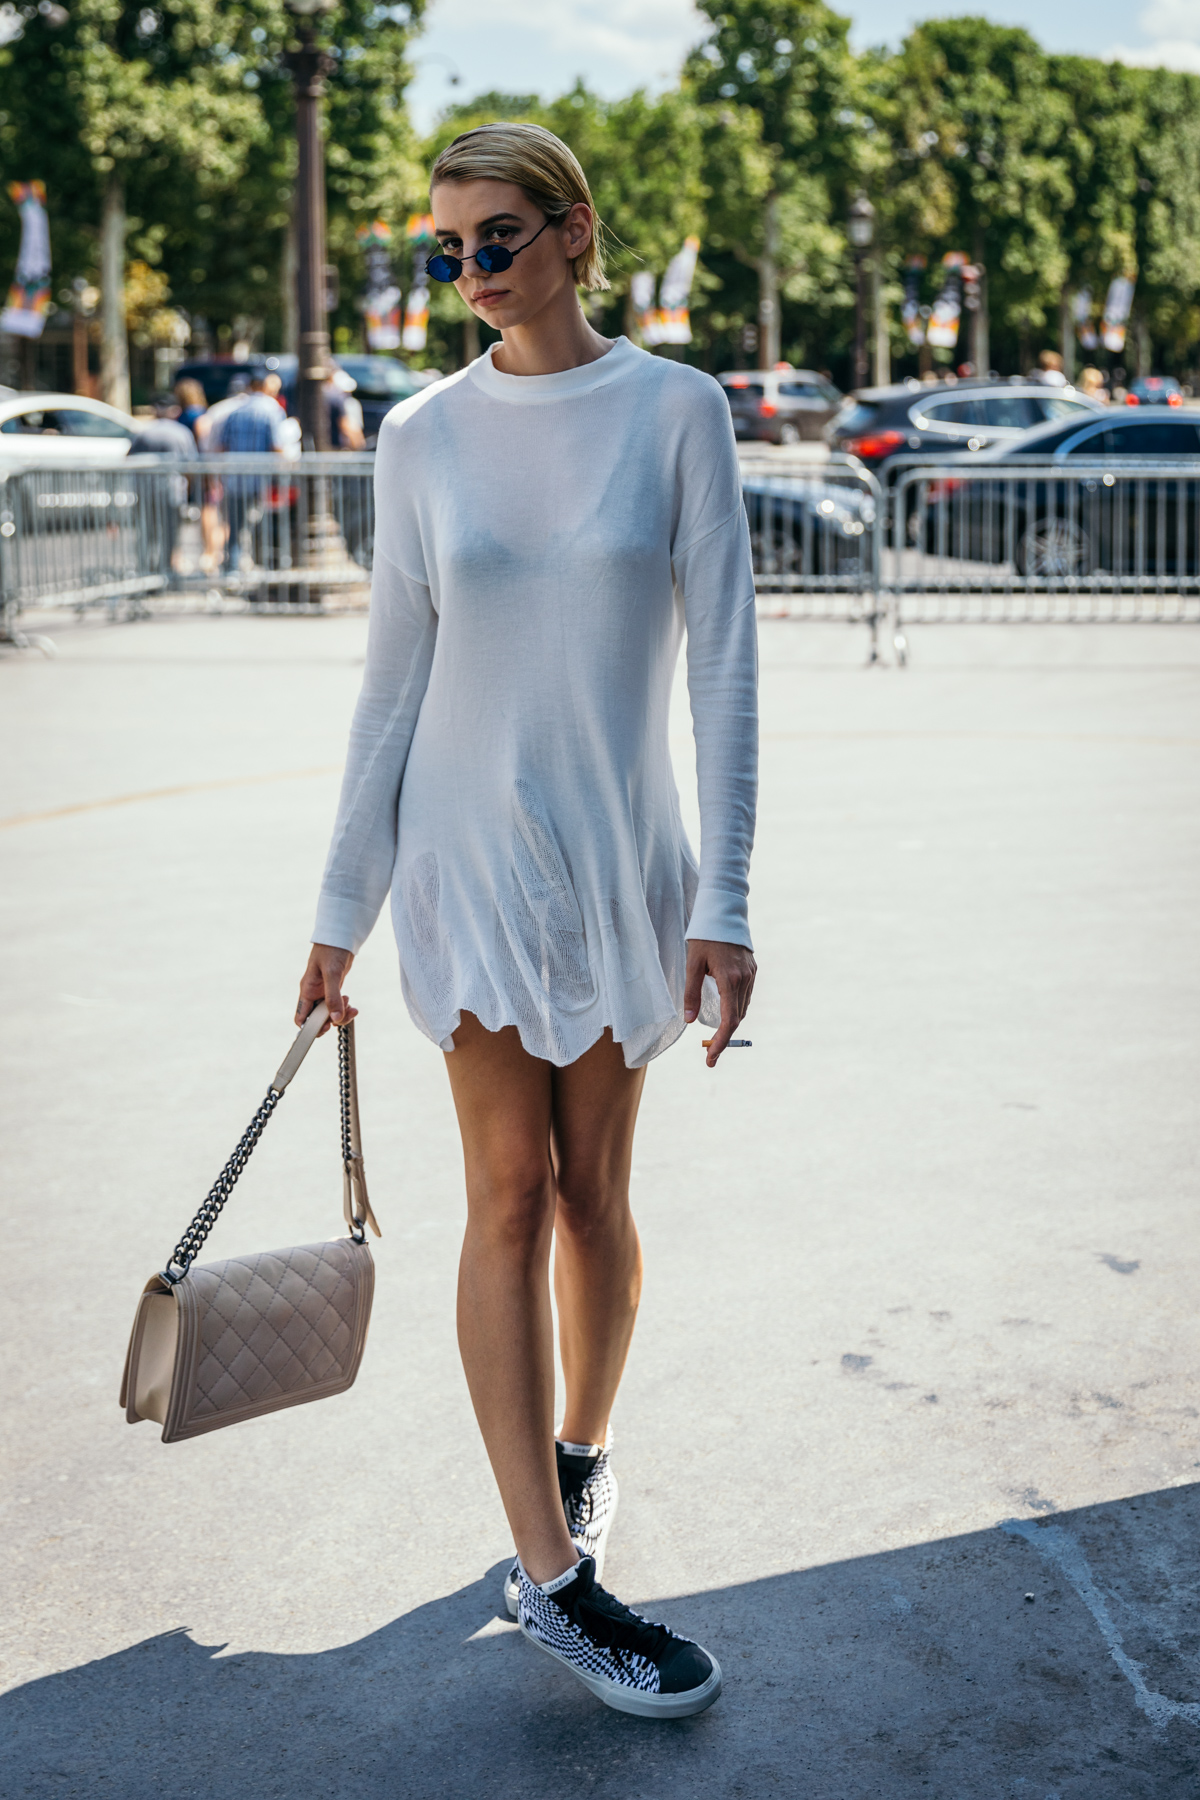 Streetstyle at Chanel during Paris Fashion Week Haute Couture Fall/Winter 2018Photo © Alexis Breugelmans